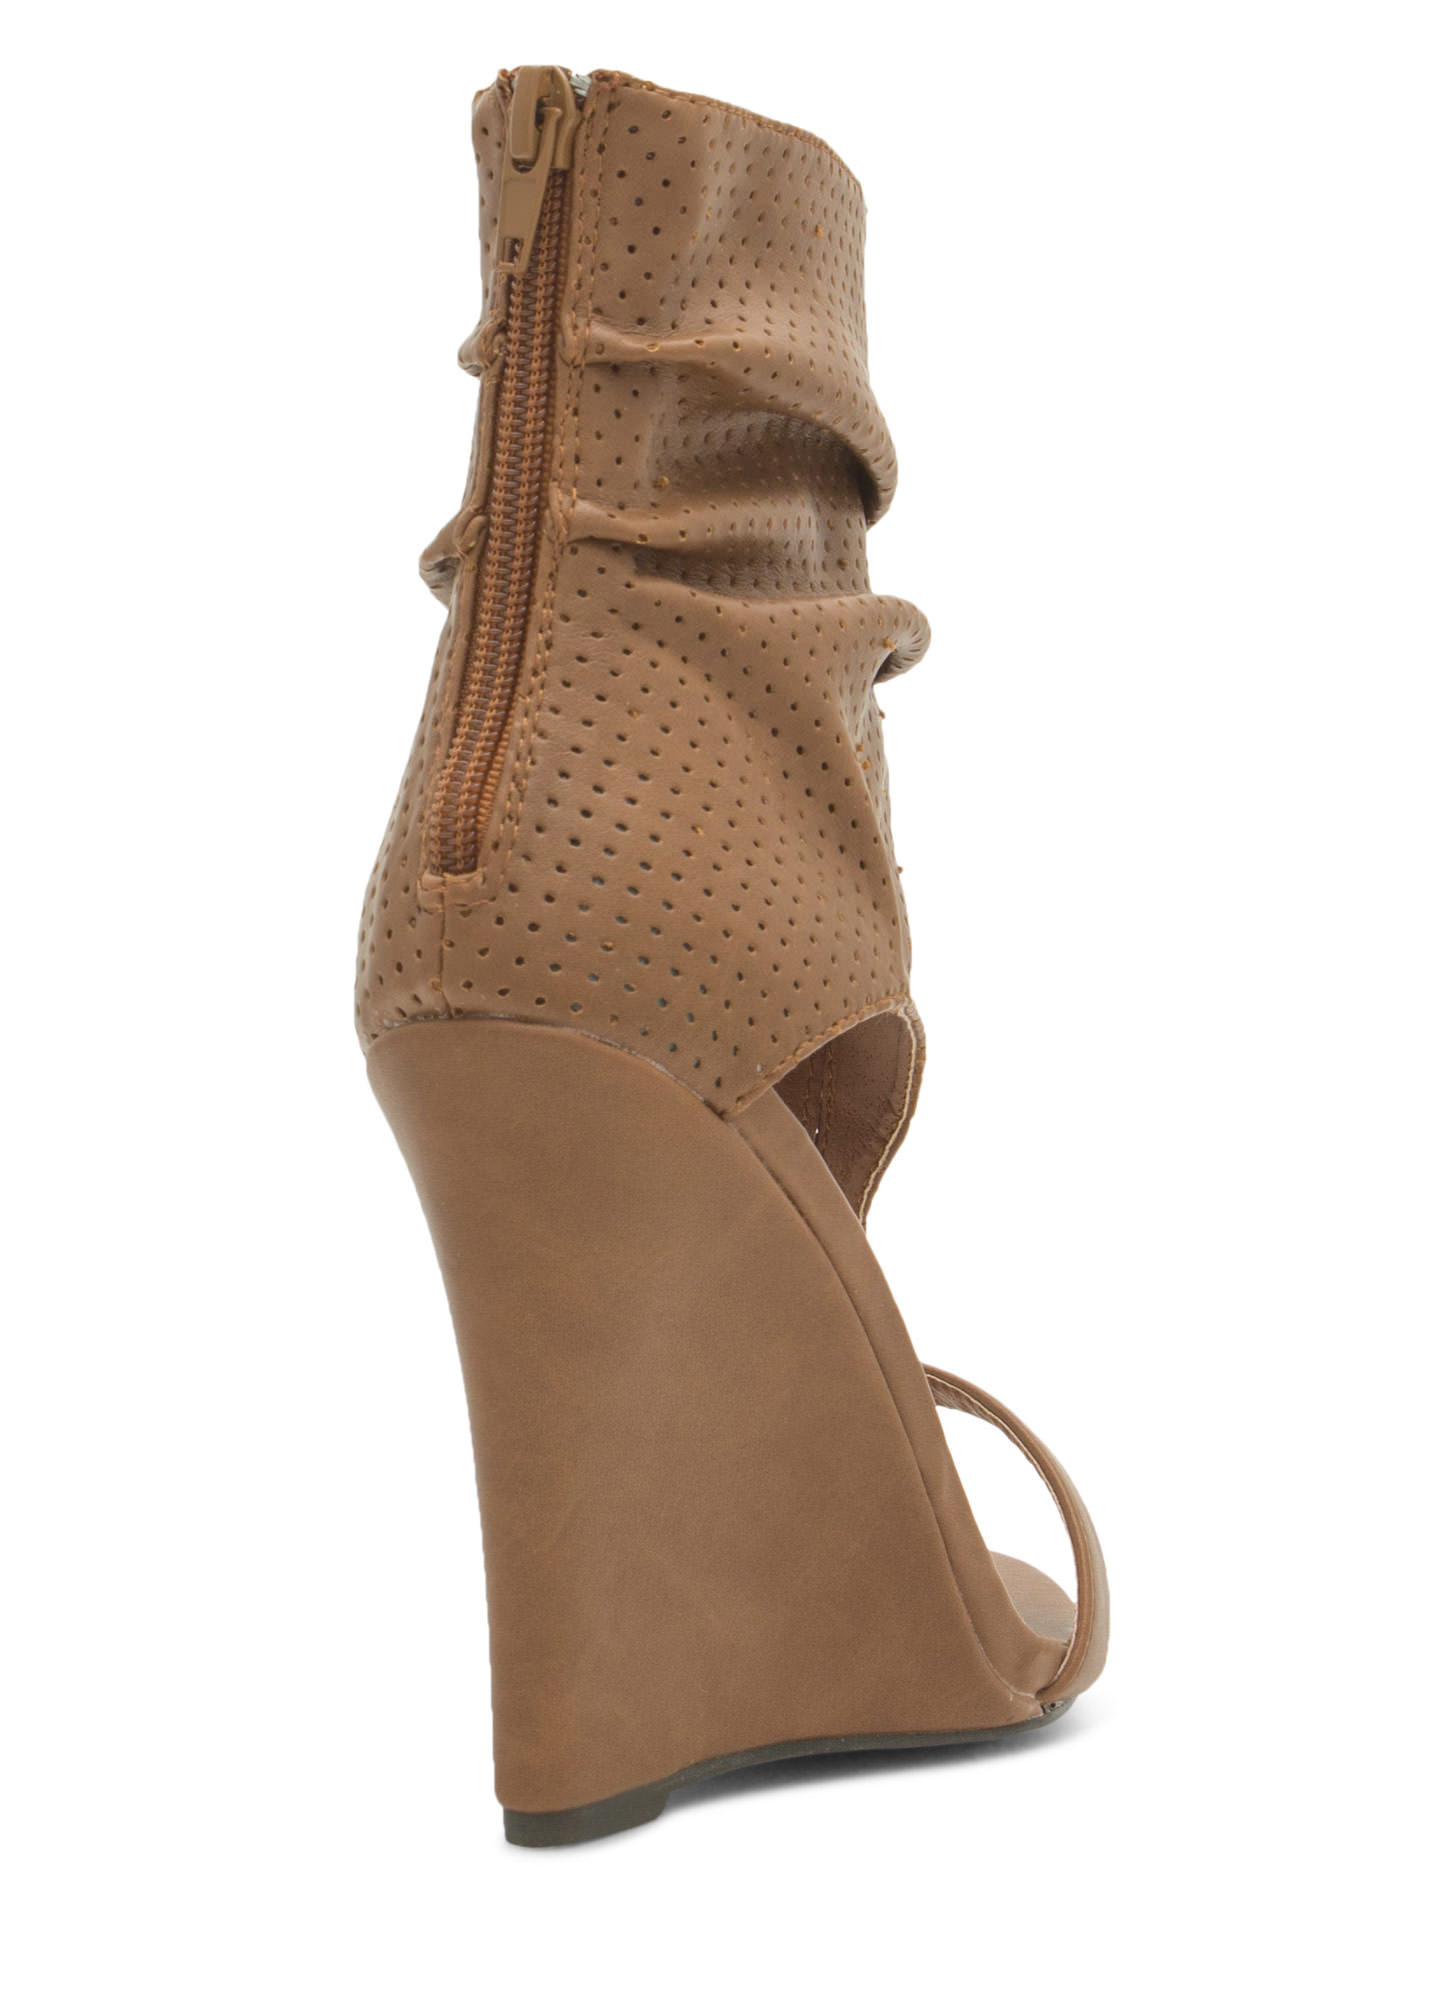 Get The Boot Perforated Slouchy Wedges TAN